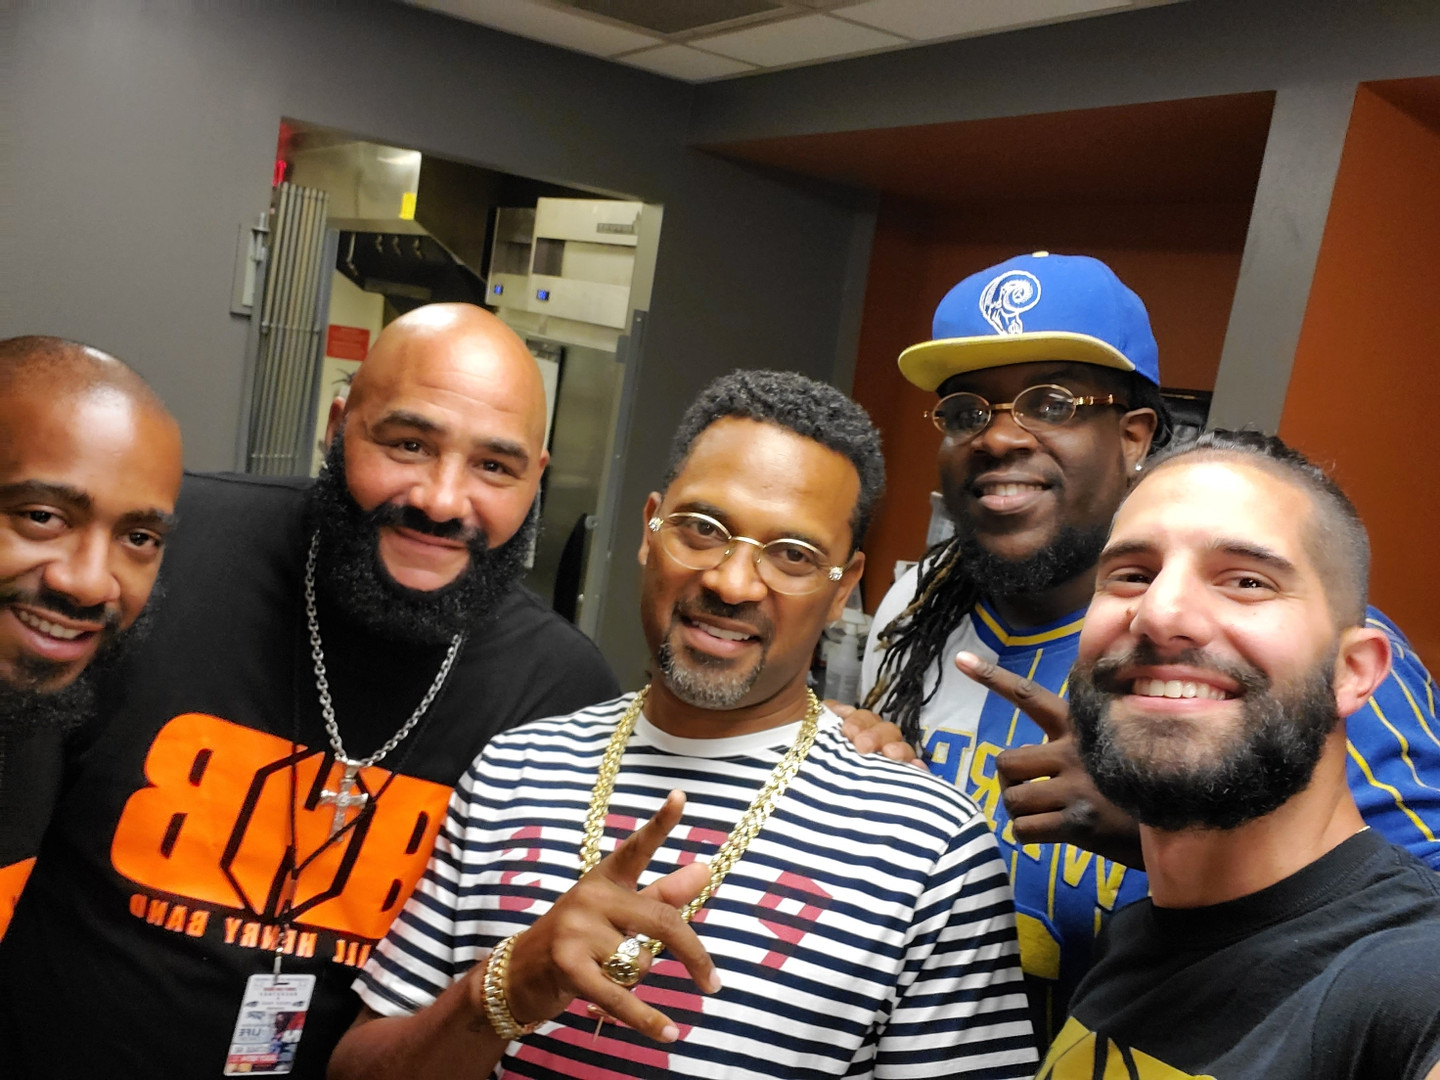 Live with Mike Epps @ Stage AE